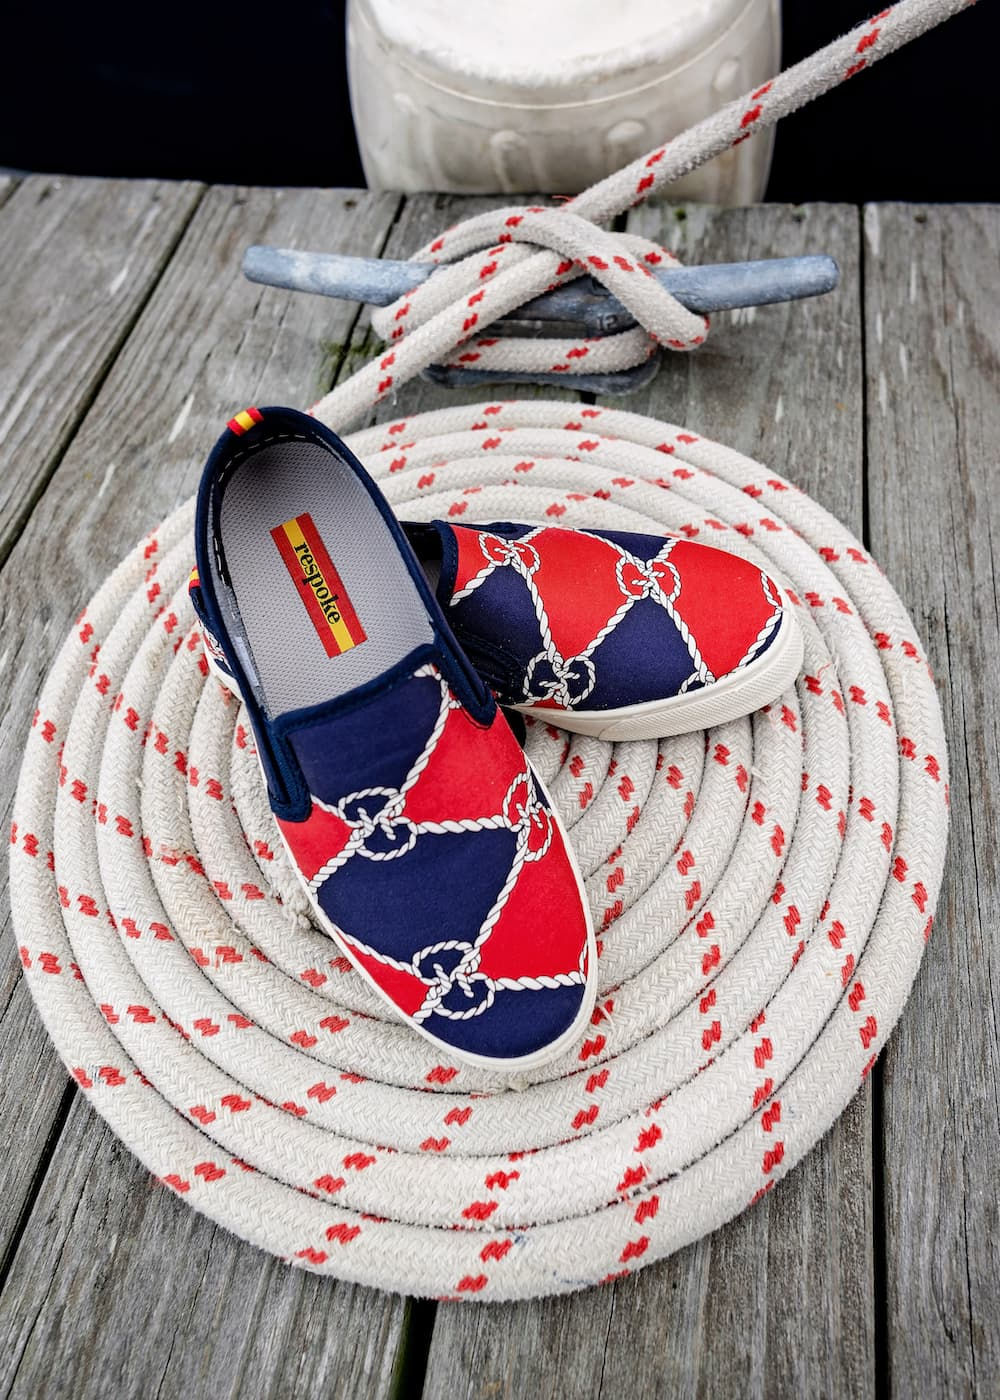 Provincetown Fashion Accessories By Respoke